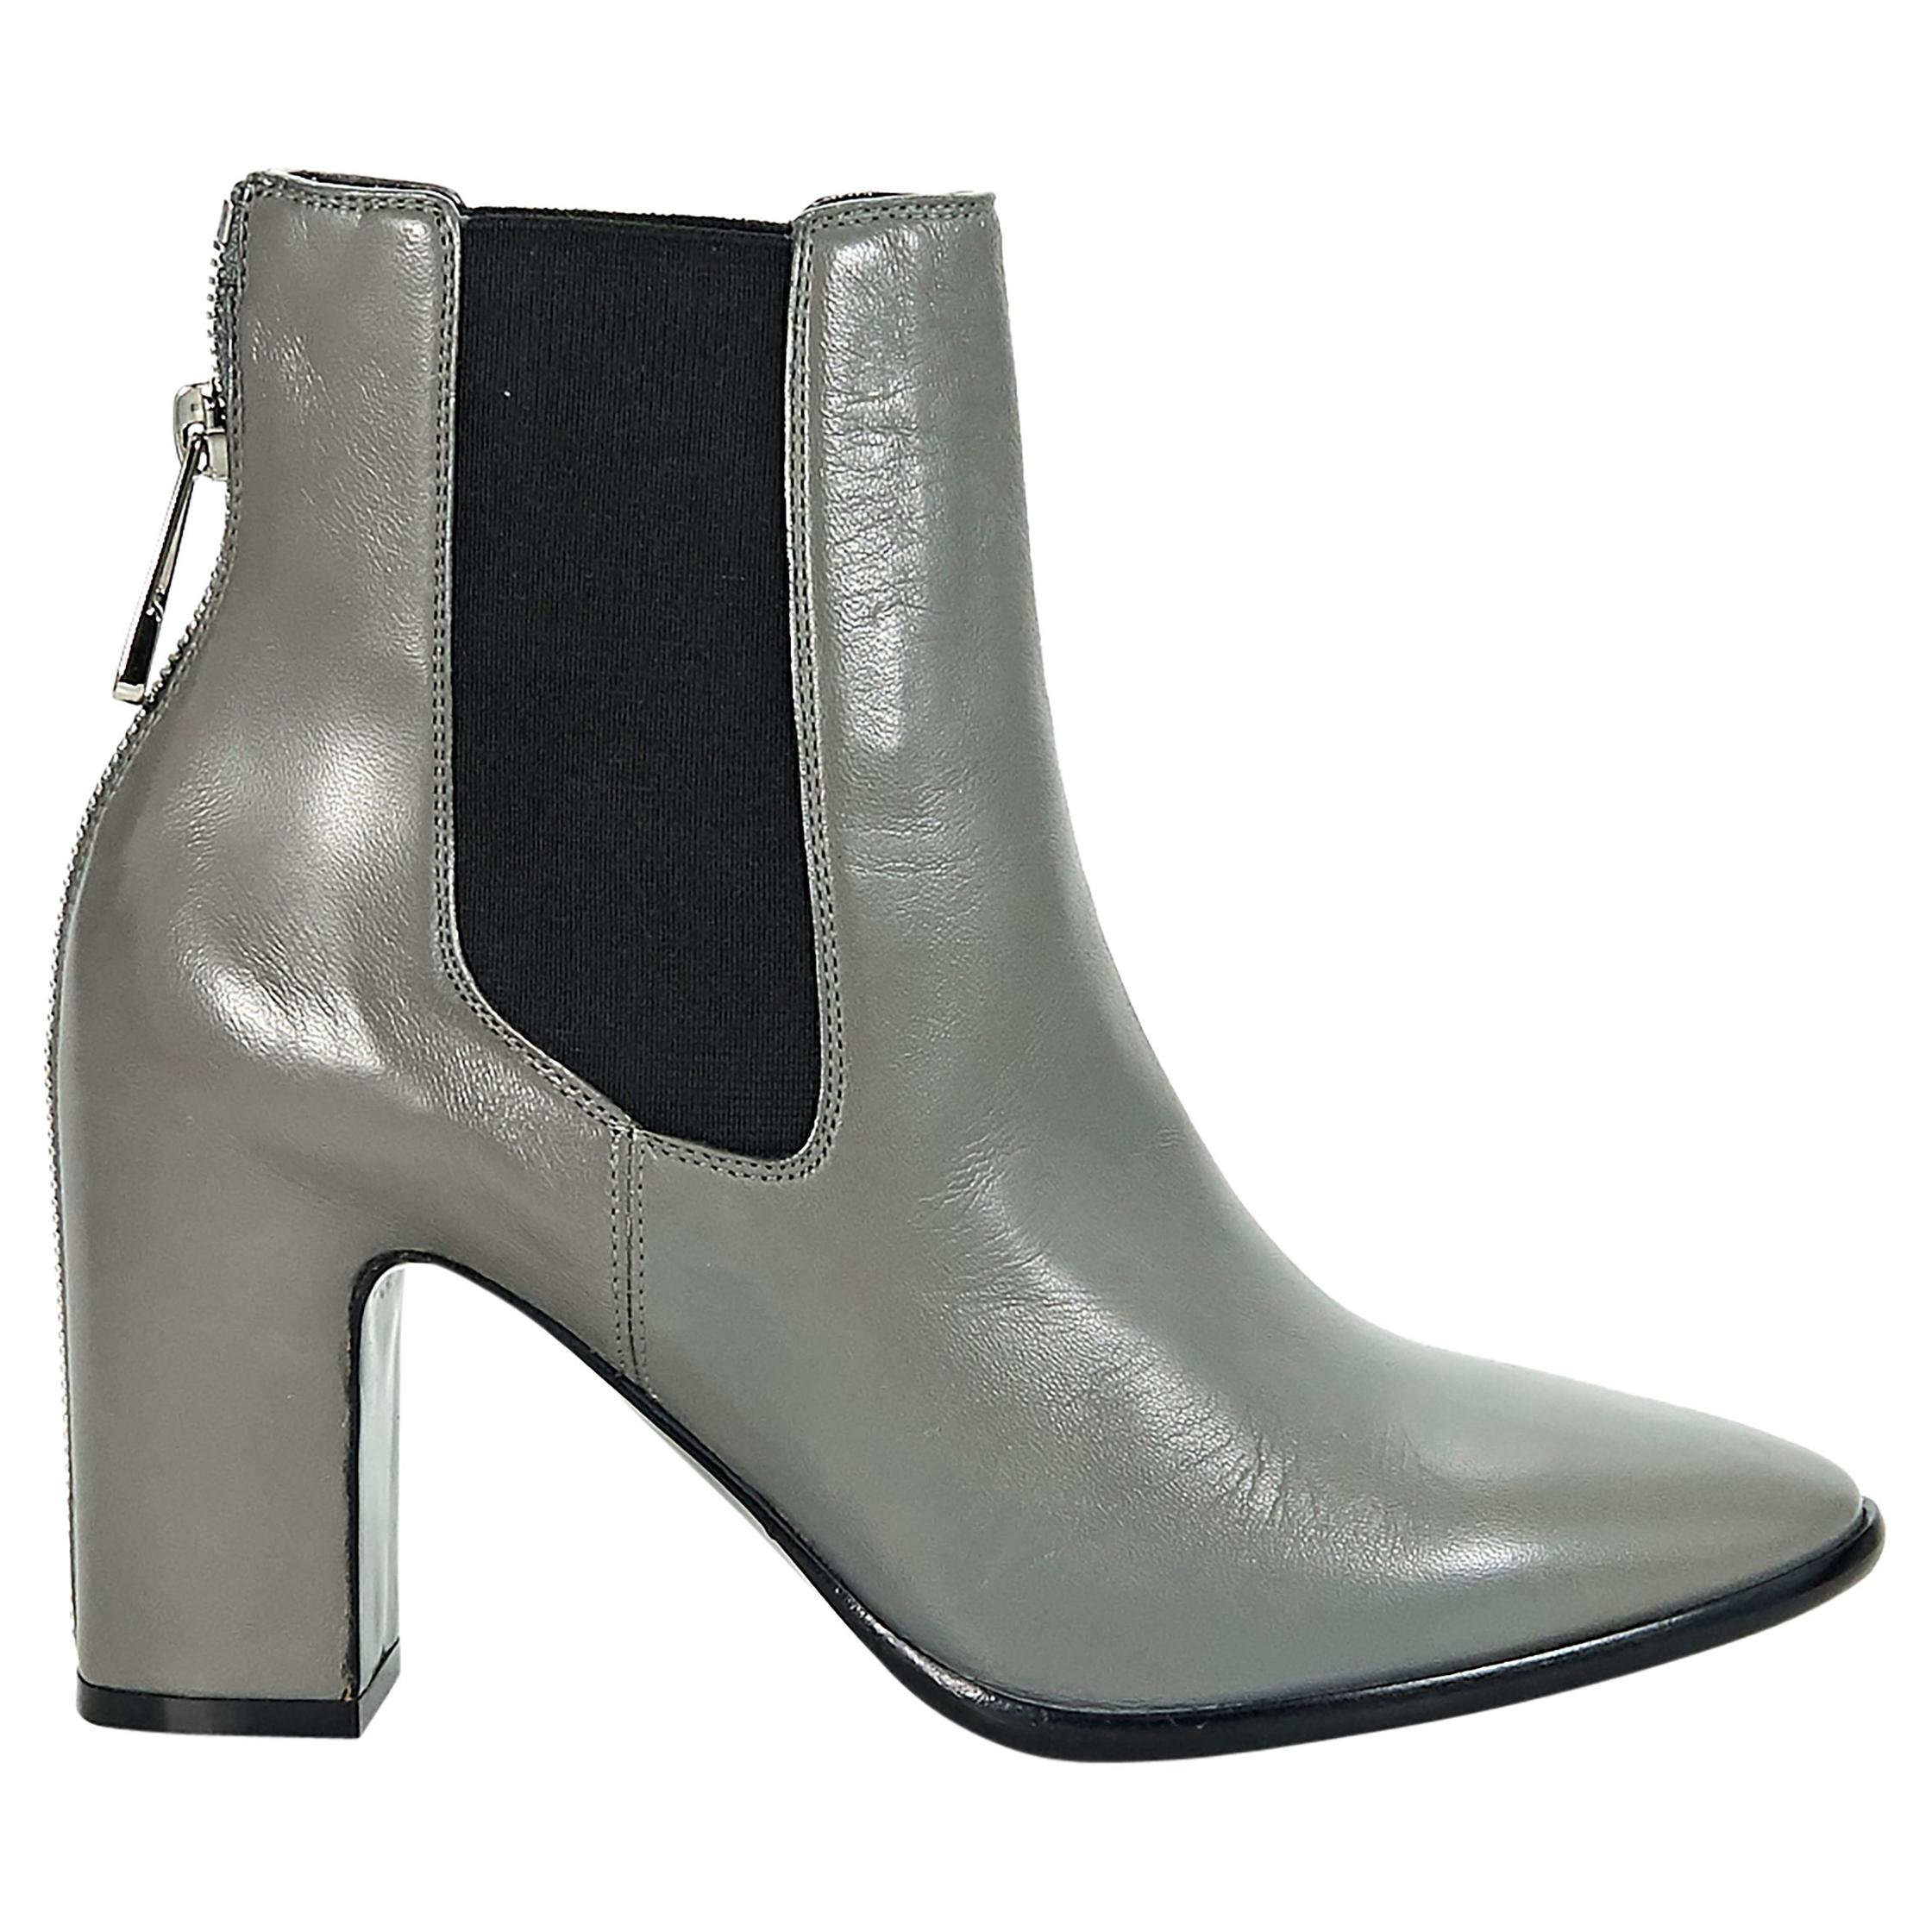 094044f7e Grey Balenciaga Leather Ankle Boots For Sale at 1stdibs